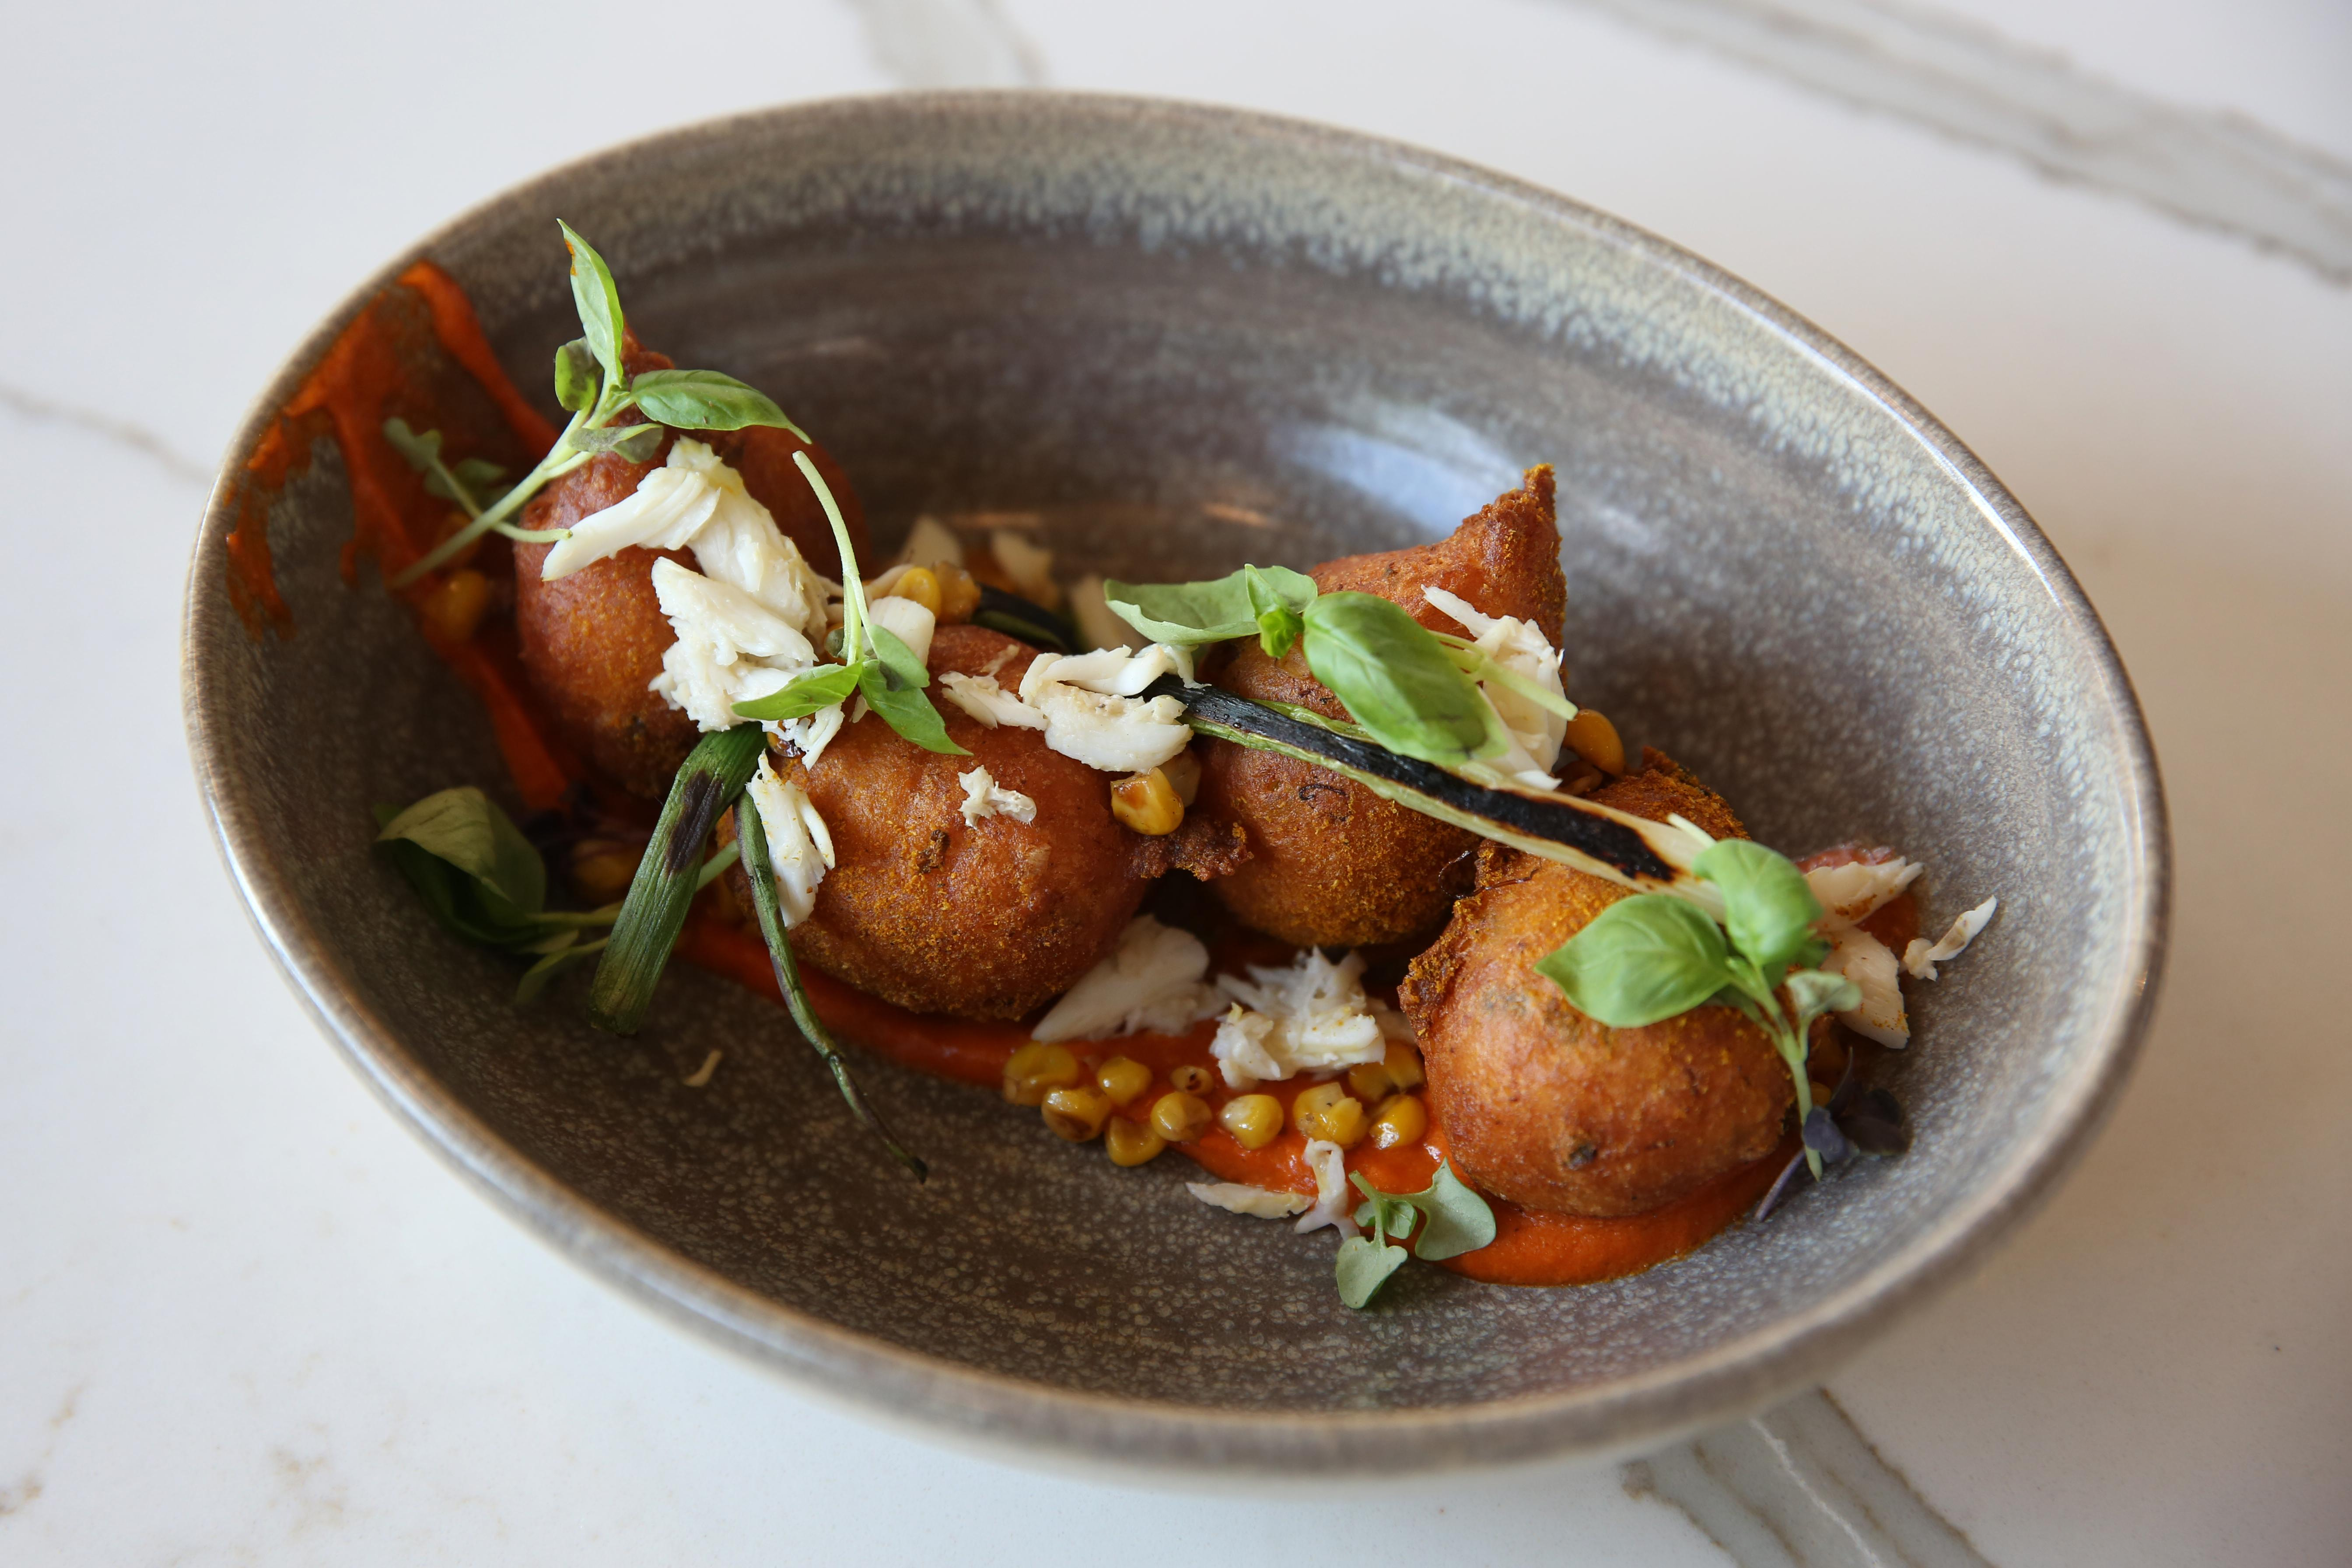 Dig into butternut squash muhammara dip, the restaurant's signature Maryland crab beignets or its unique pastrami-spiced salmon (lunch) or monkfish (dinner).{ }(Image: Amanda Andrade-Rhoades/ DC Refined)